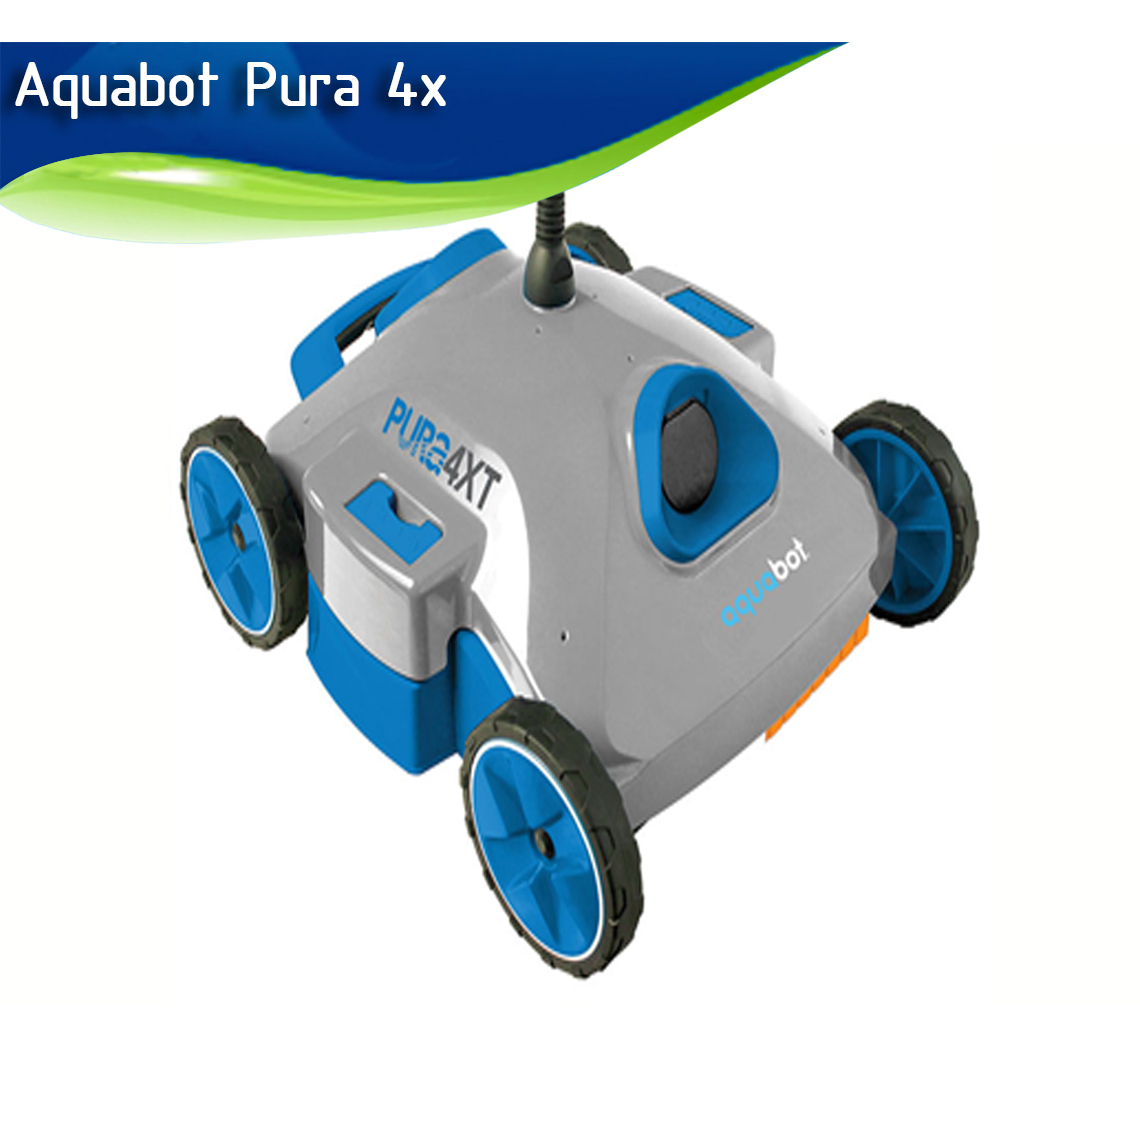 AquaBot Pura 4X REVIEW